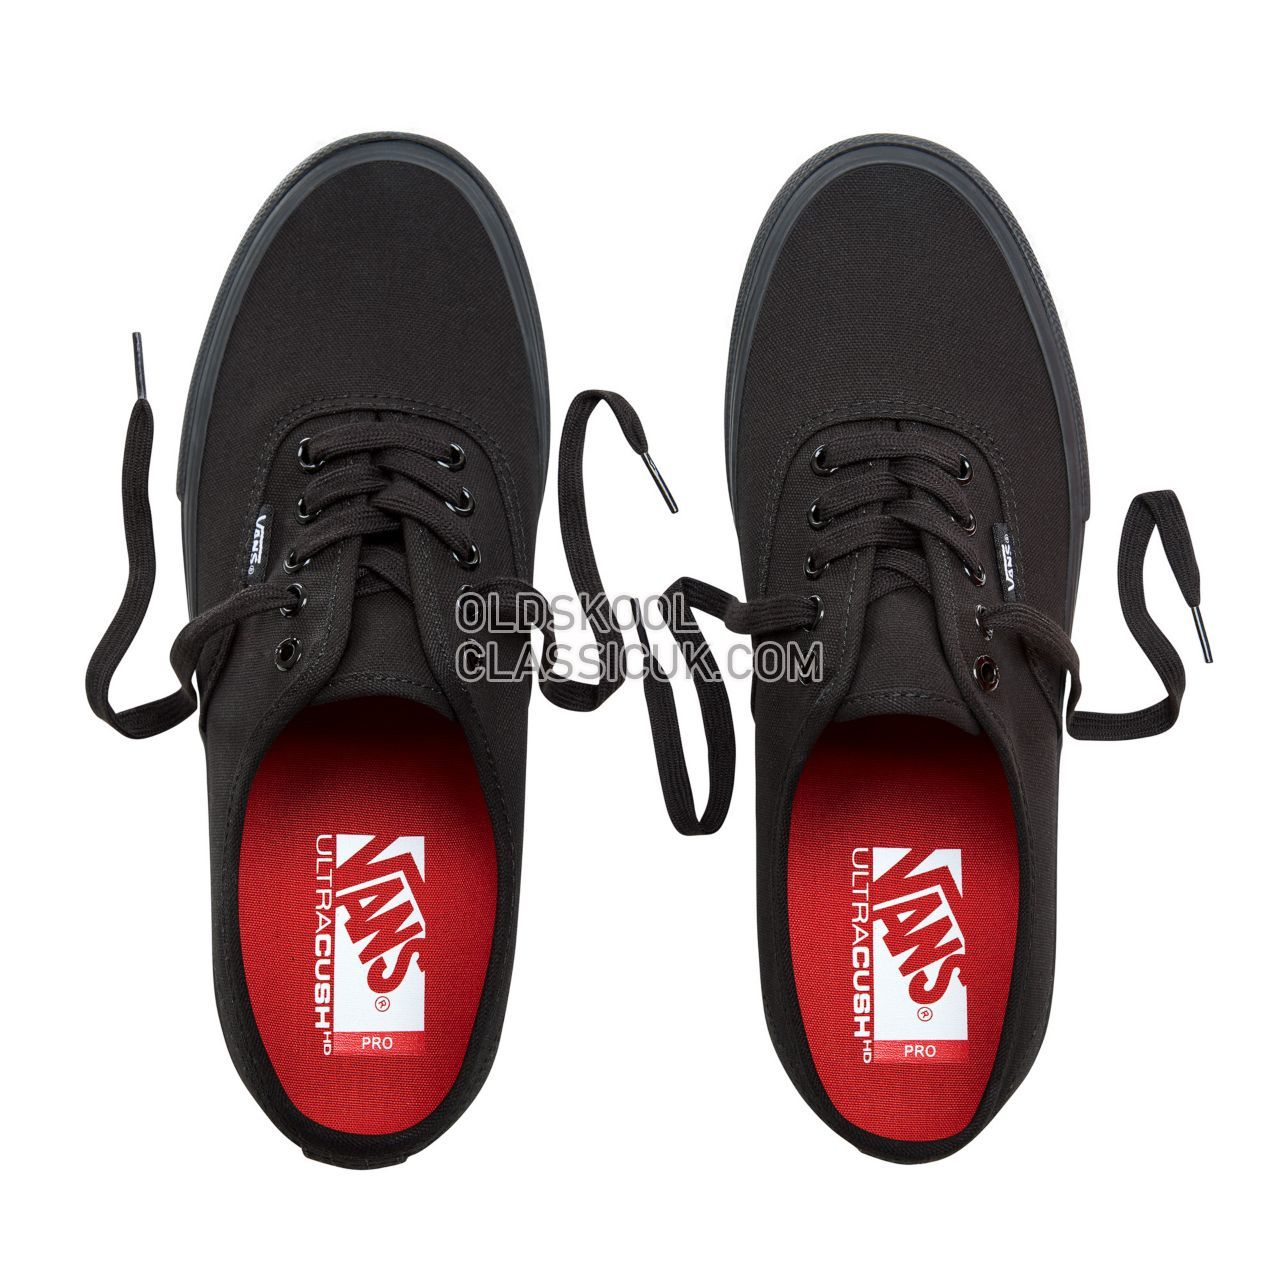 Vans Authentic Pro Sneakers Mens Black VQ0DBKA Shoes